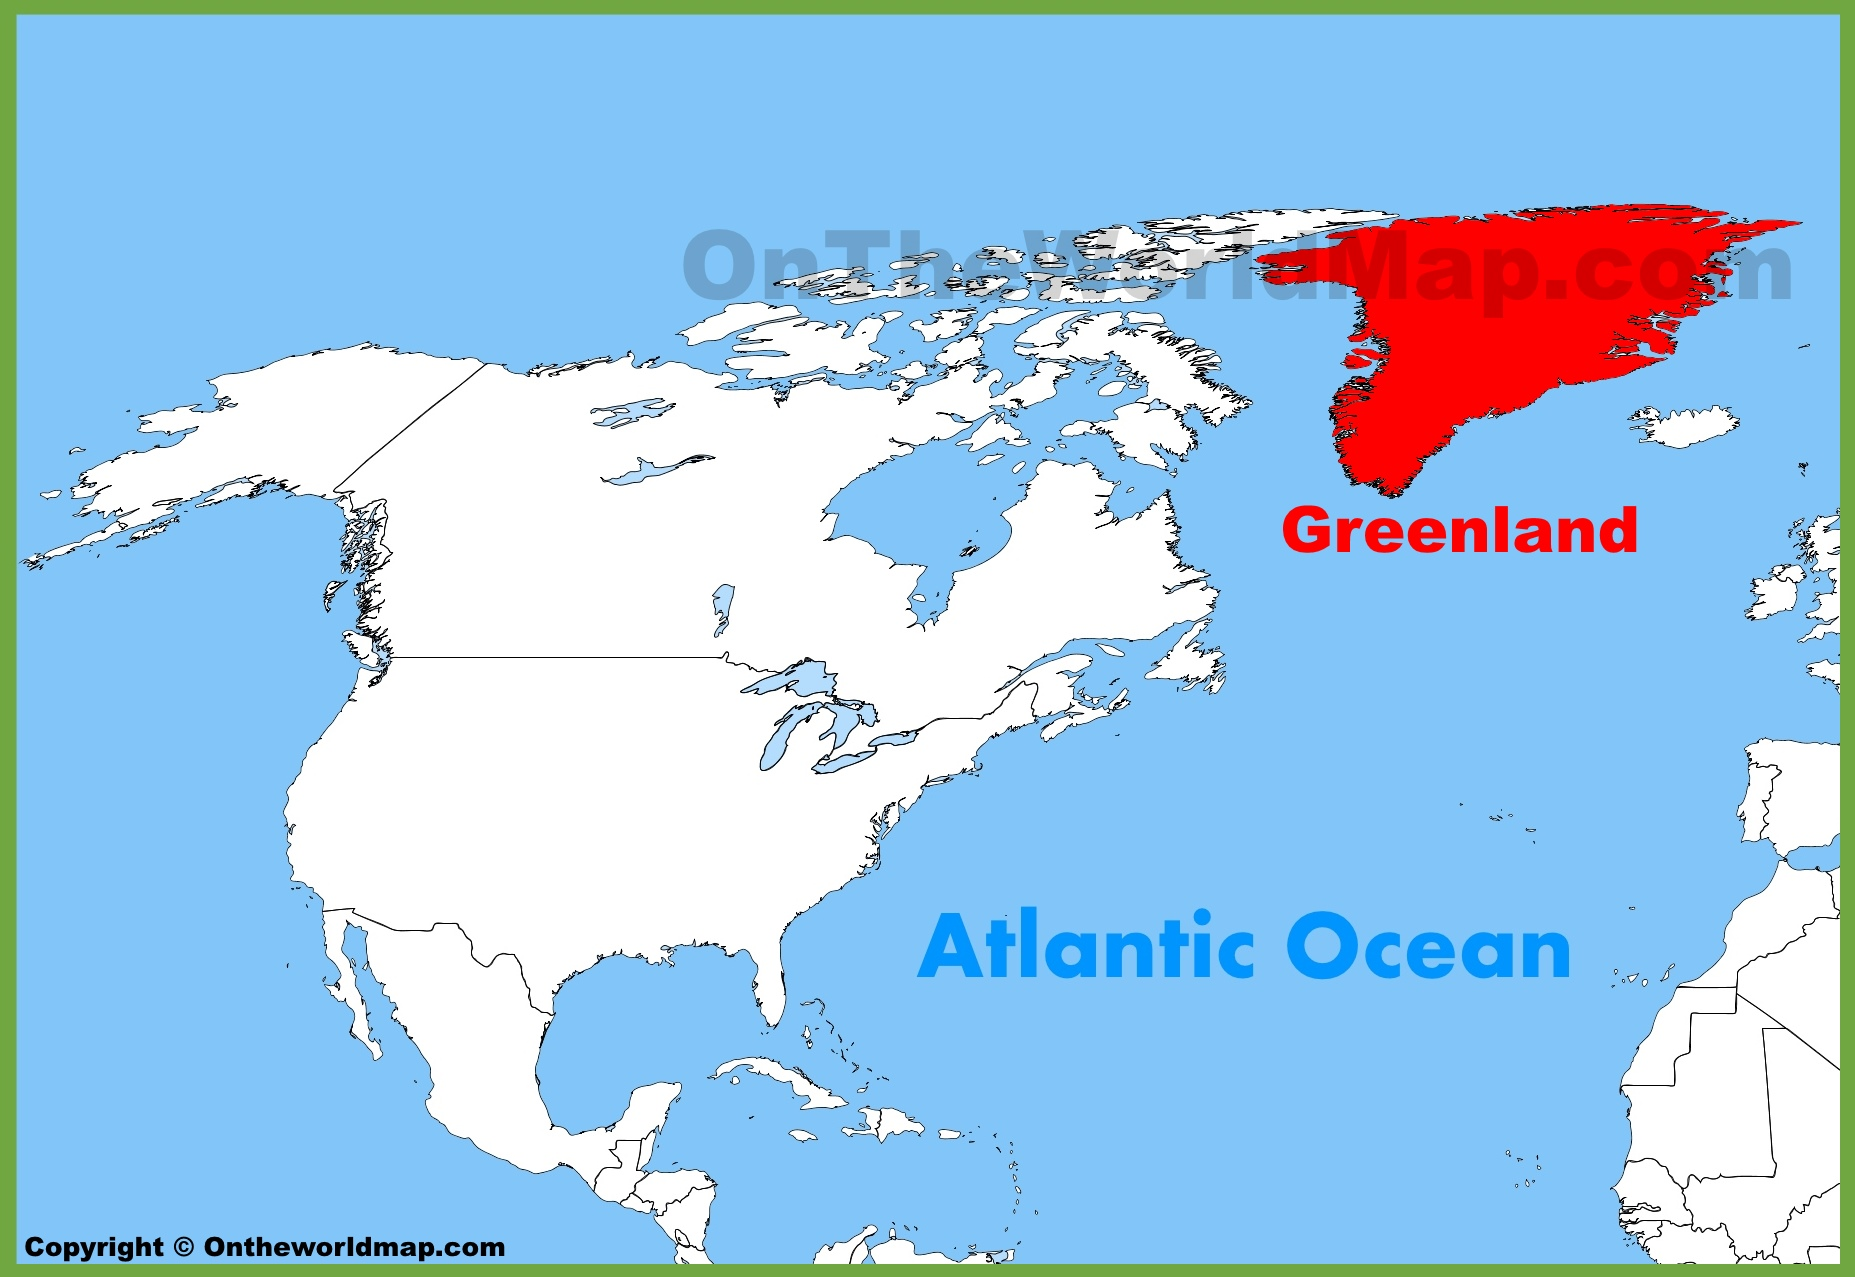 Greenland location on the north america map greenland location on the north america map gumiabroncs Images